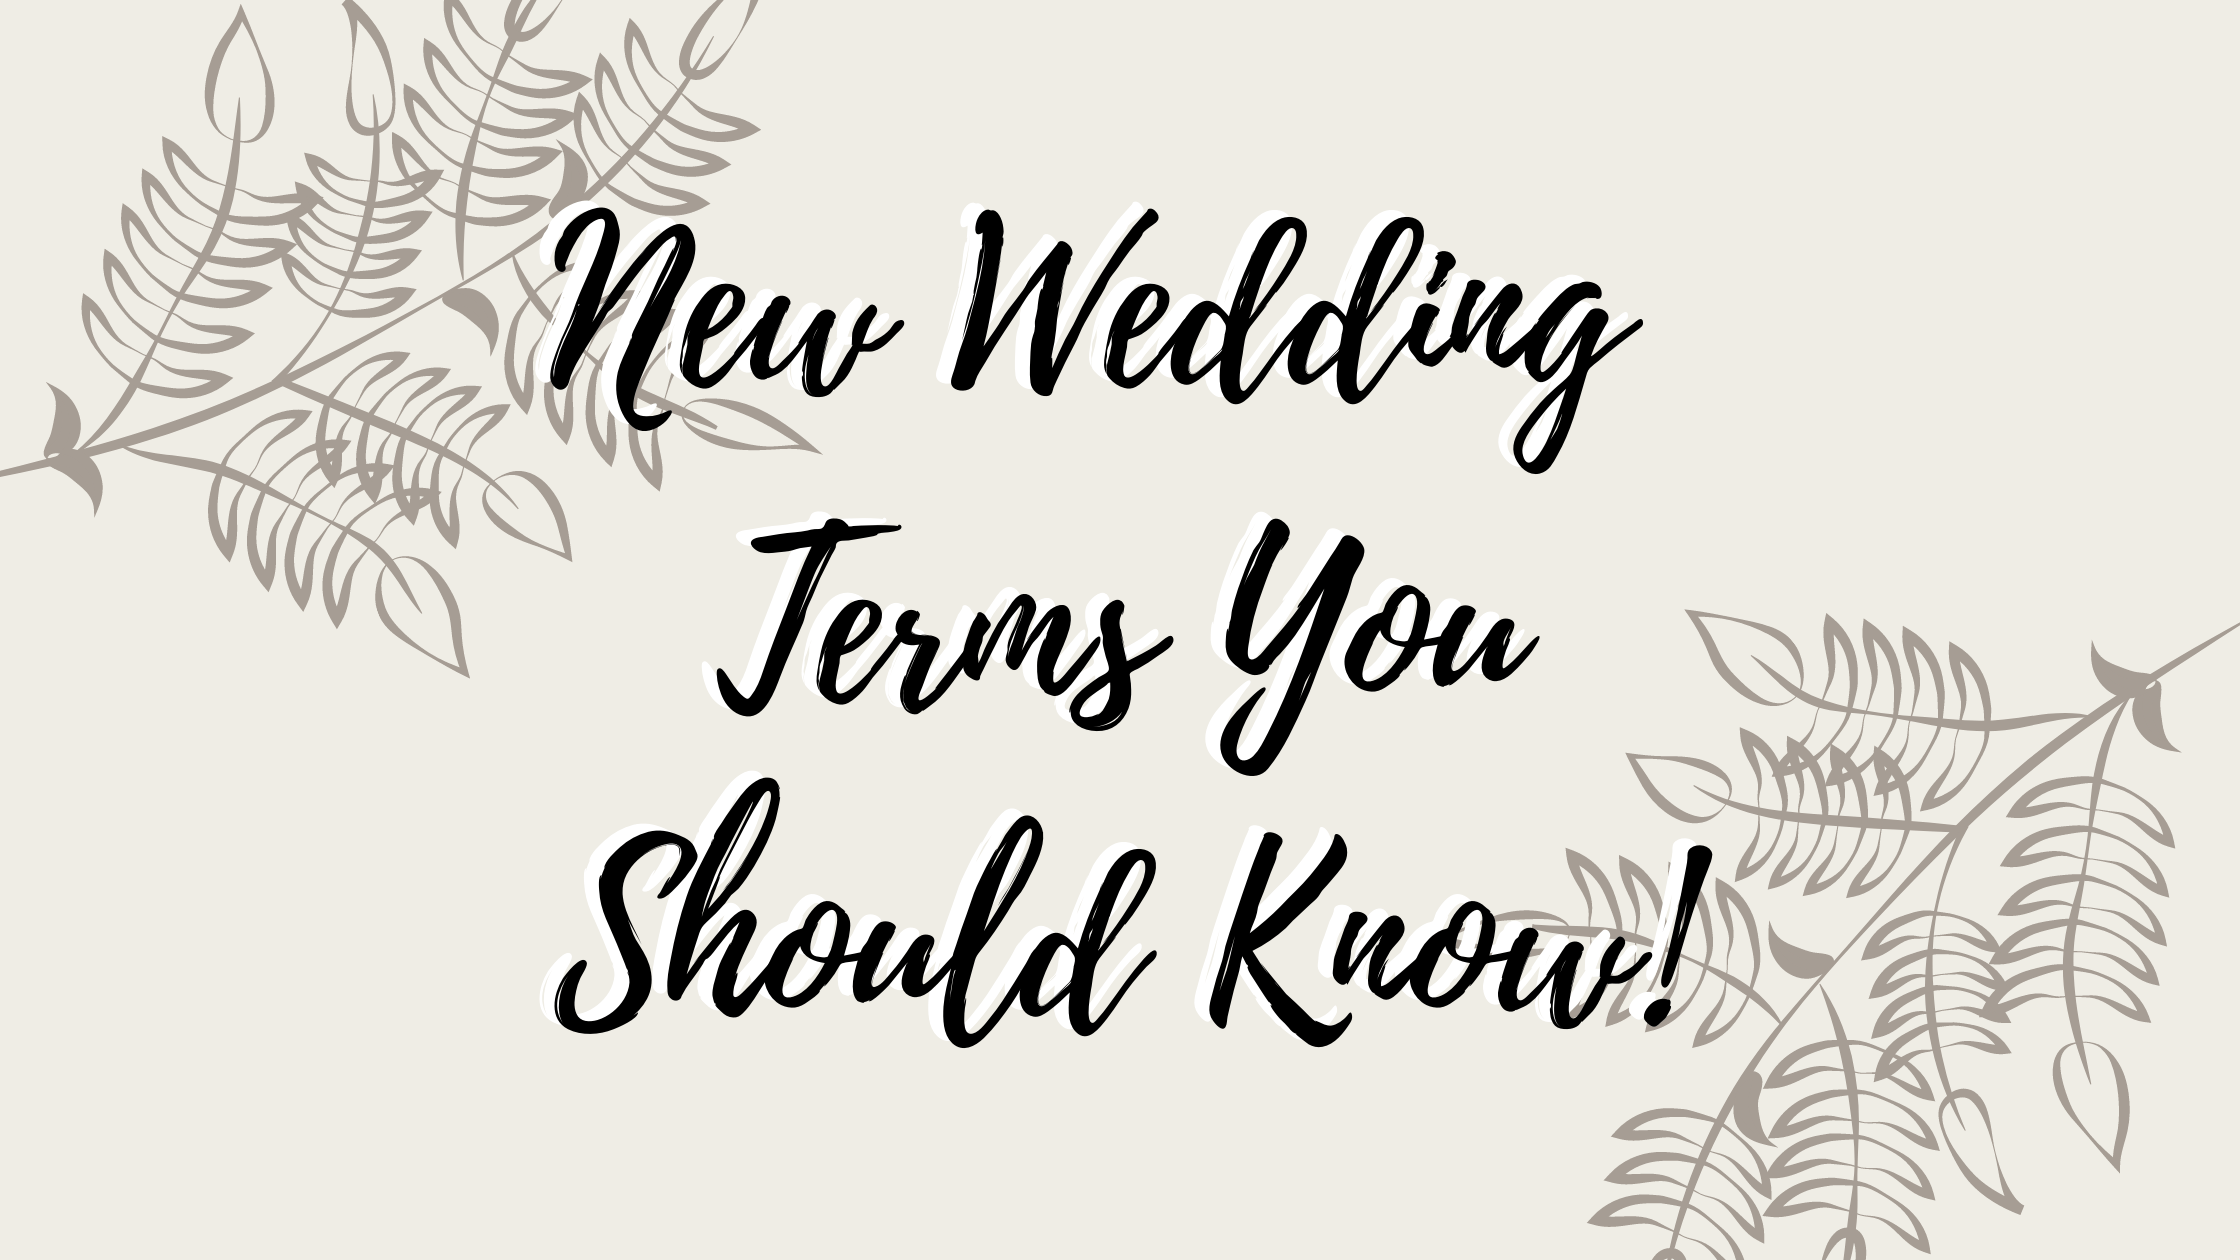 New Wedding Terms You Should Know!